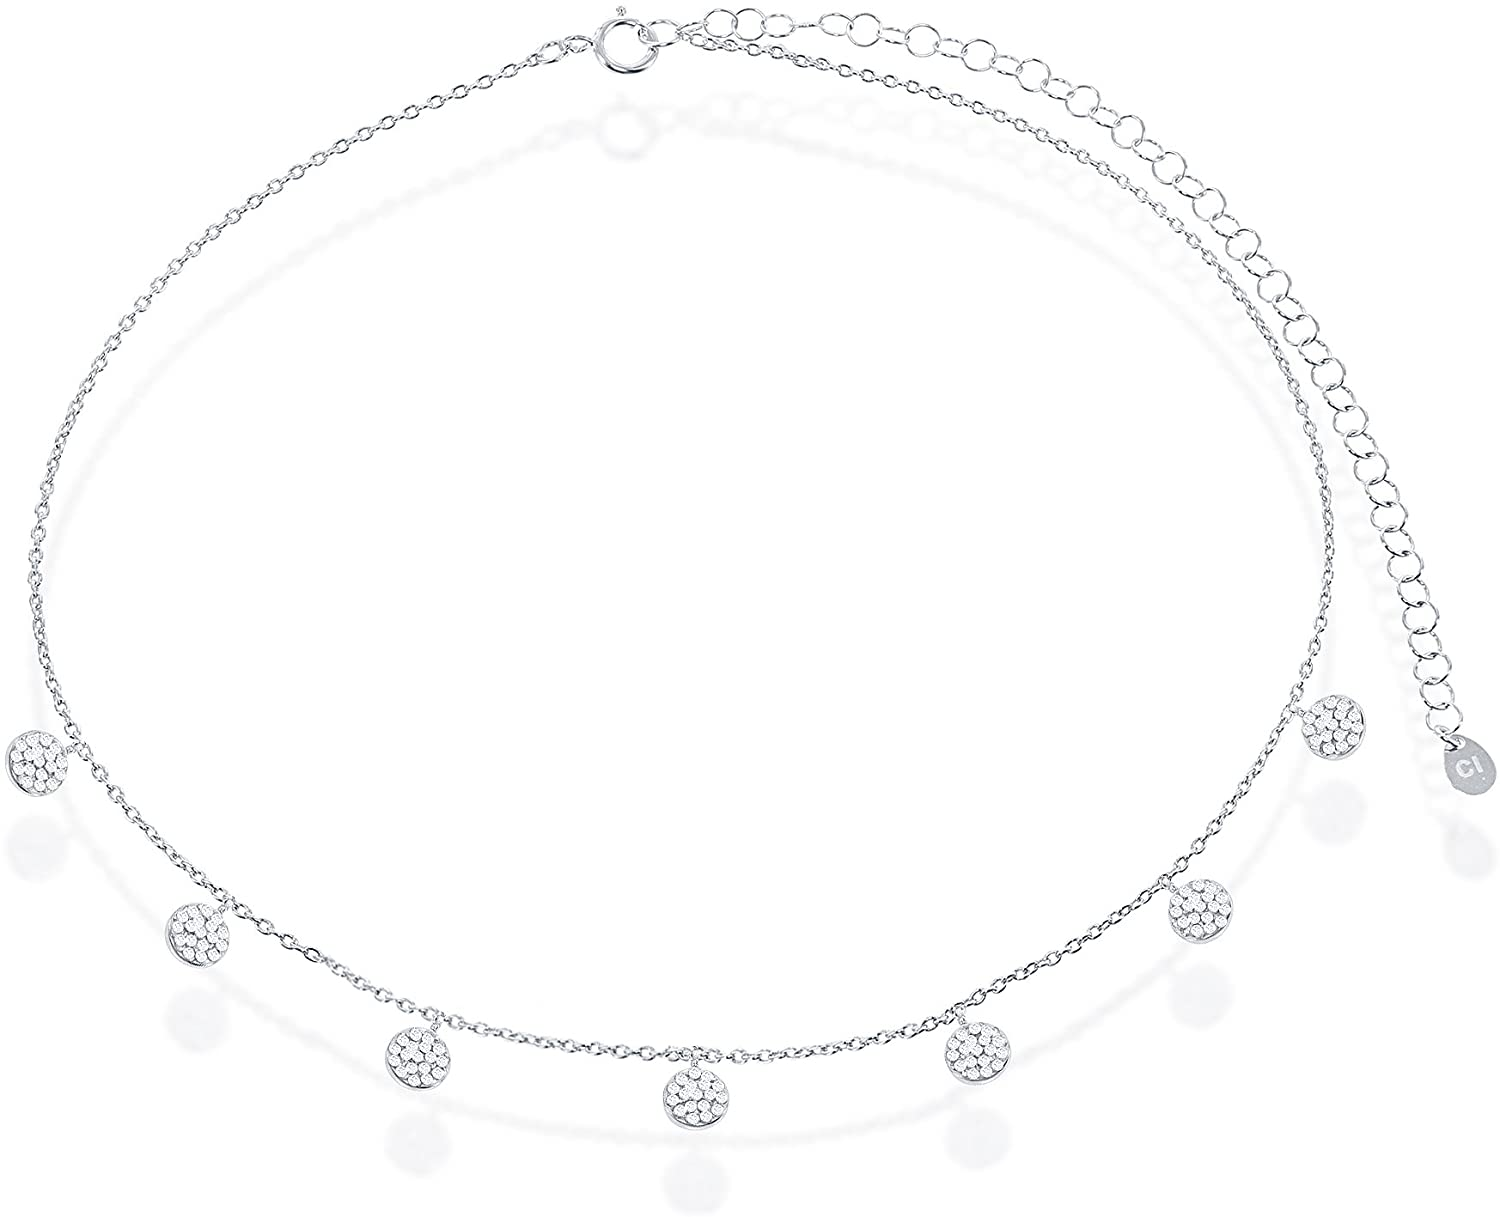 Sterling Silver High Polish Micro Pave Cubic Zirconia Dangling Round Discs 12+4 Choker Necklace